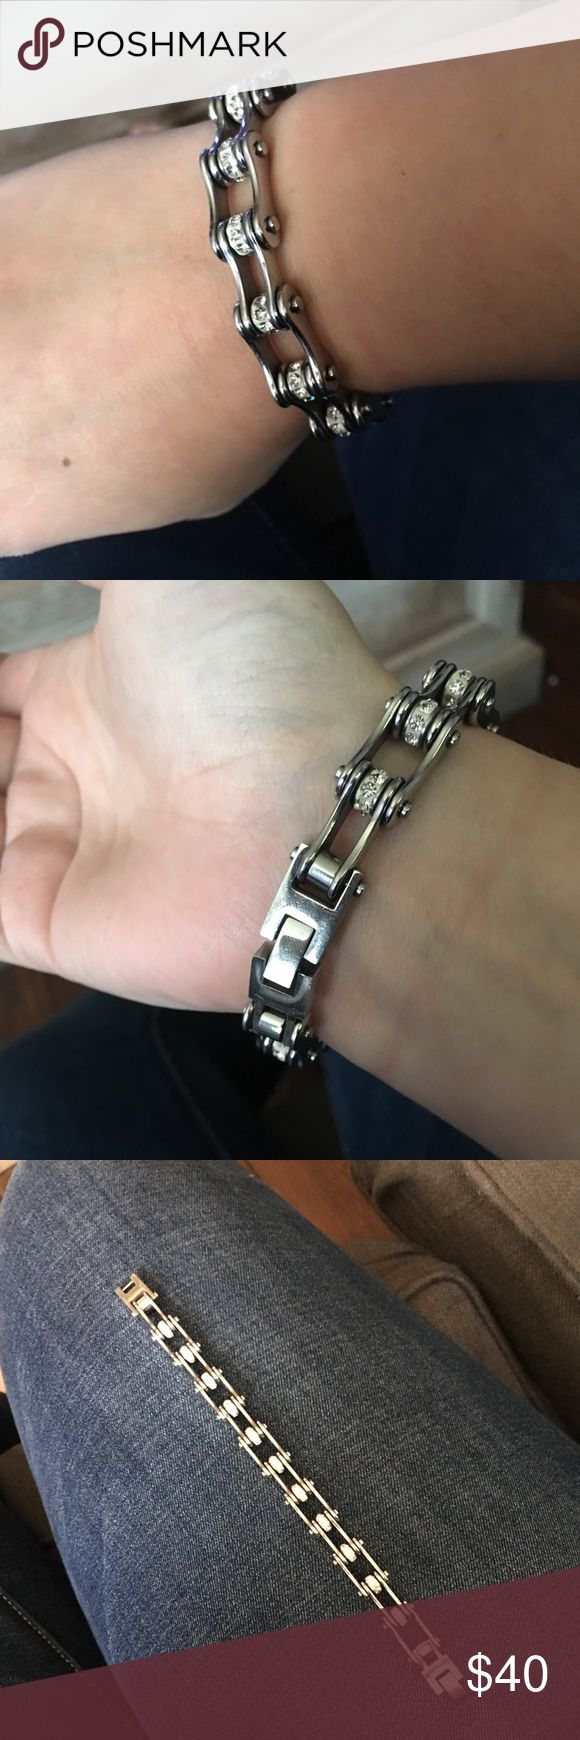 """Women's gear chain bracelet Excellent condition. The length is 7.25"""". Has rhinestones throughout bracelet. This is a super cute item! This is not """"Harley-Davidson"""" brand but was purchased at a Harley-Davidson store Harley-Davidson Jewelry Bracelets"""